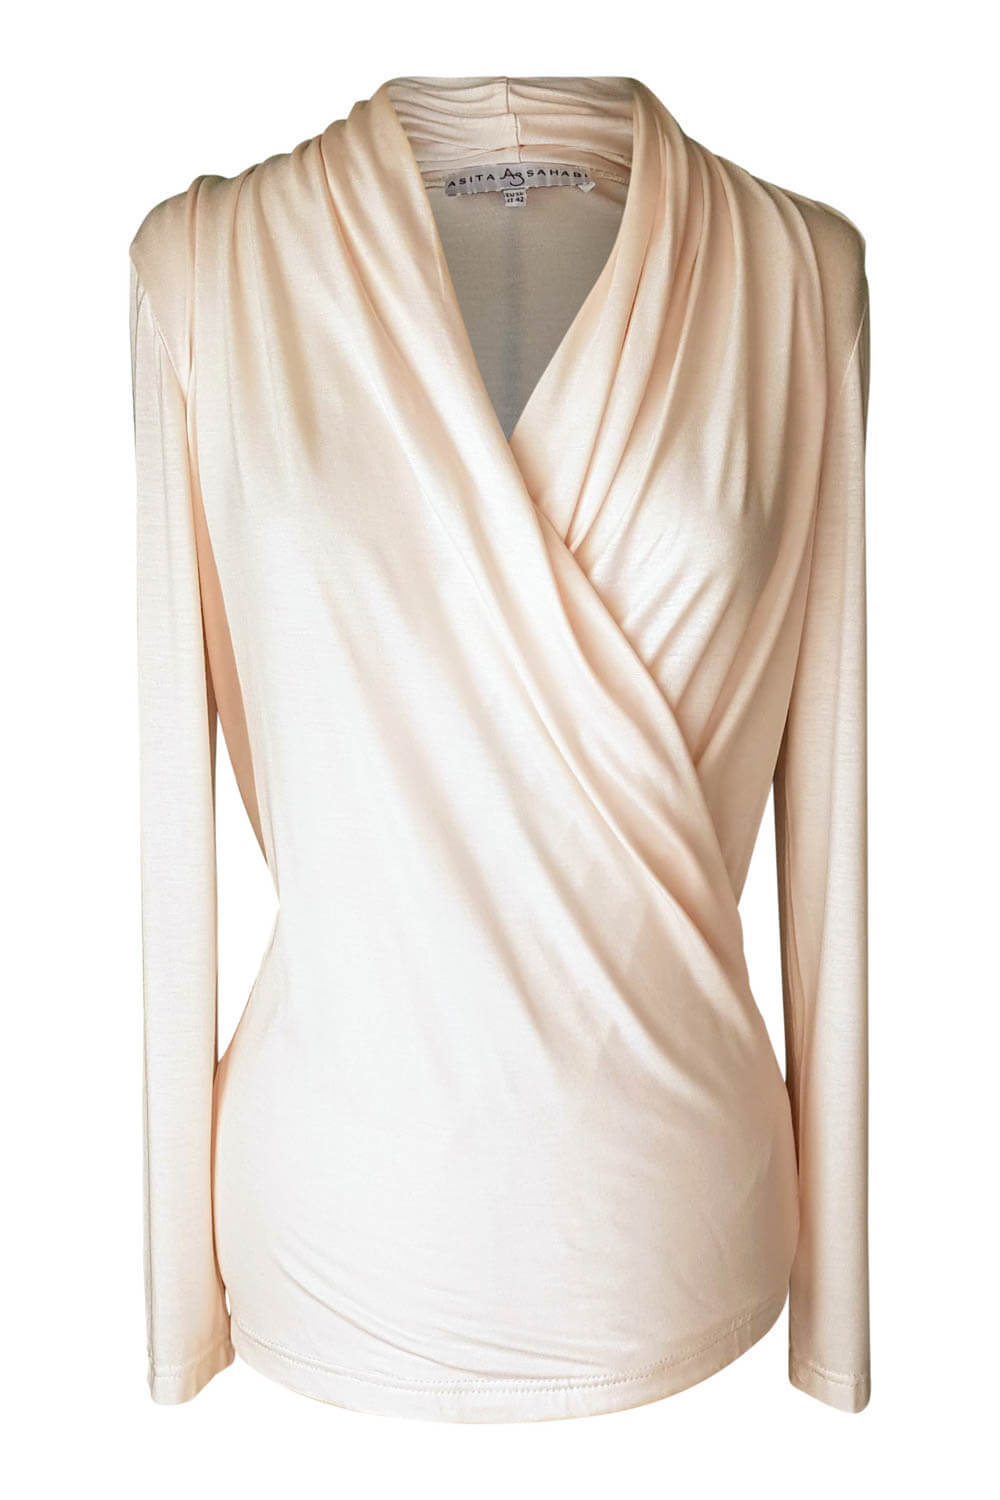 draped top with long sleeves and wrap bodice effect in nude jersey DORA